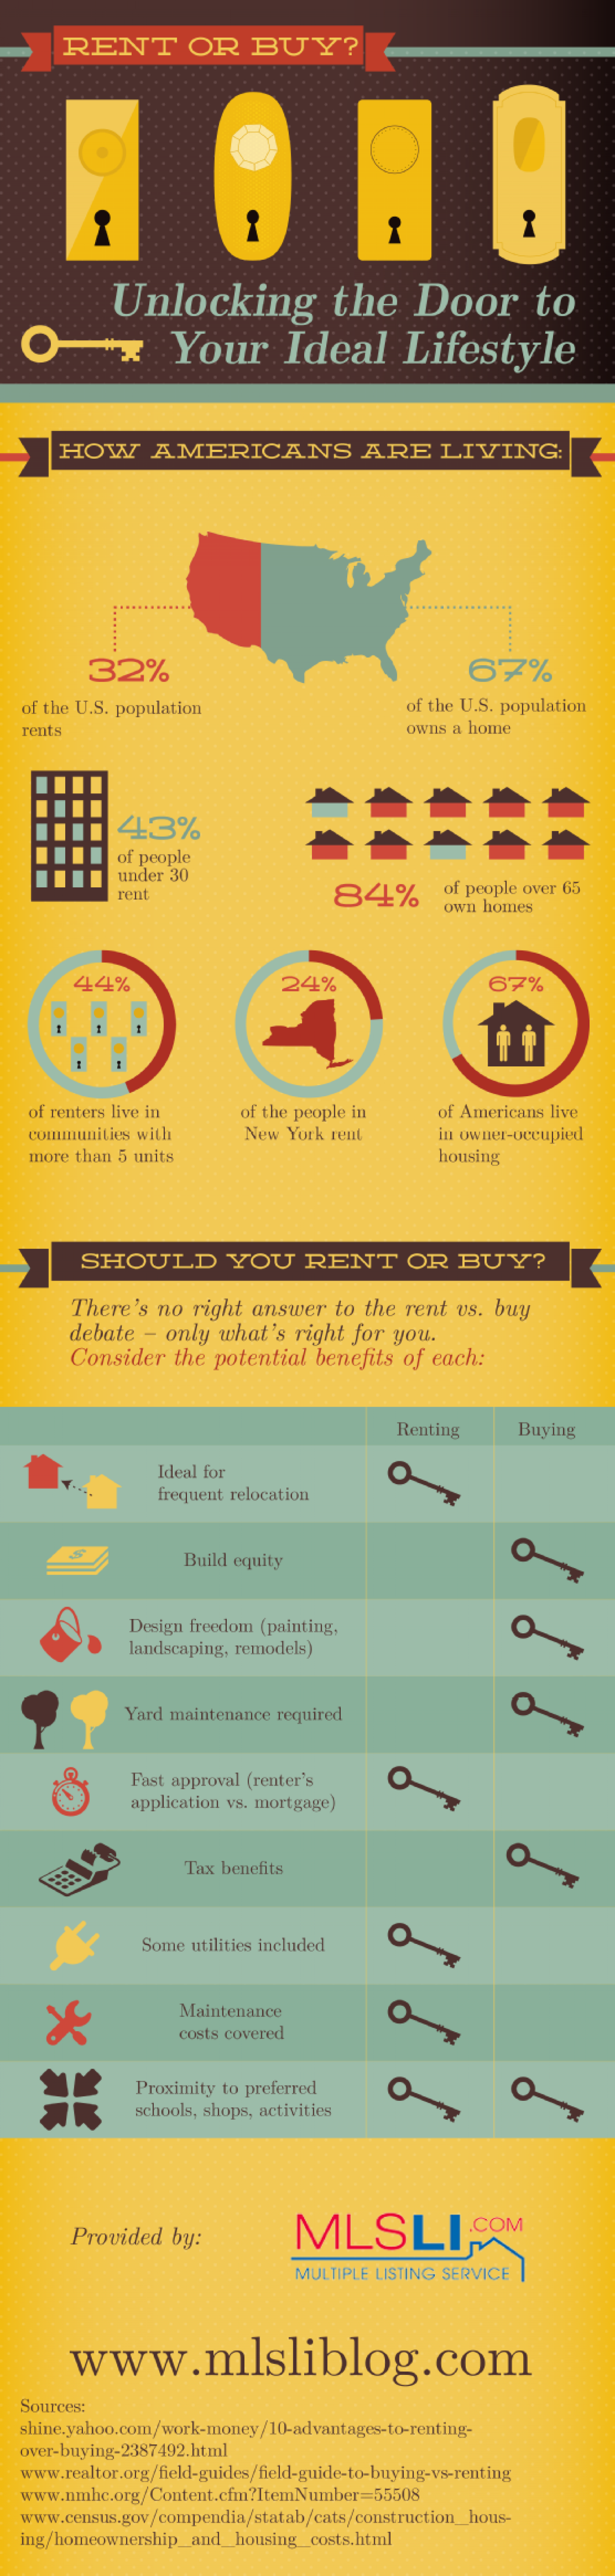 Rent or Buy? Unlocking the Door to Your Ideal Lifestyle Infographic